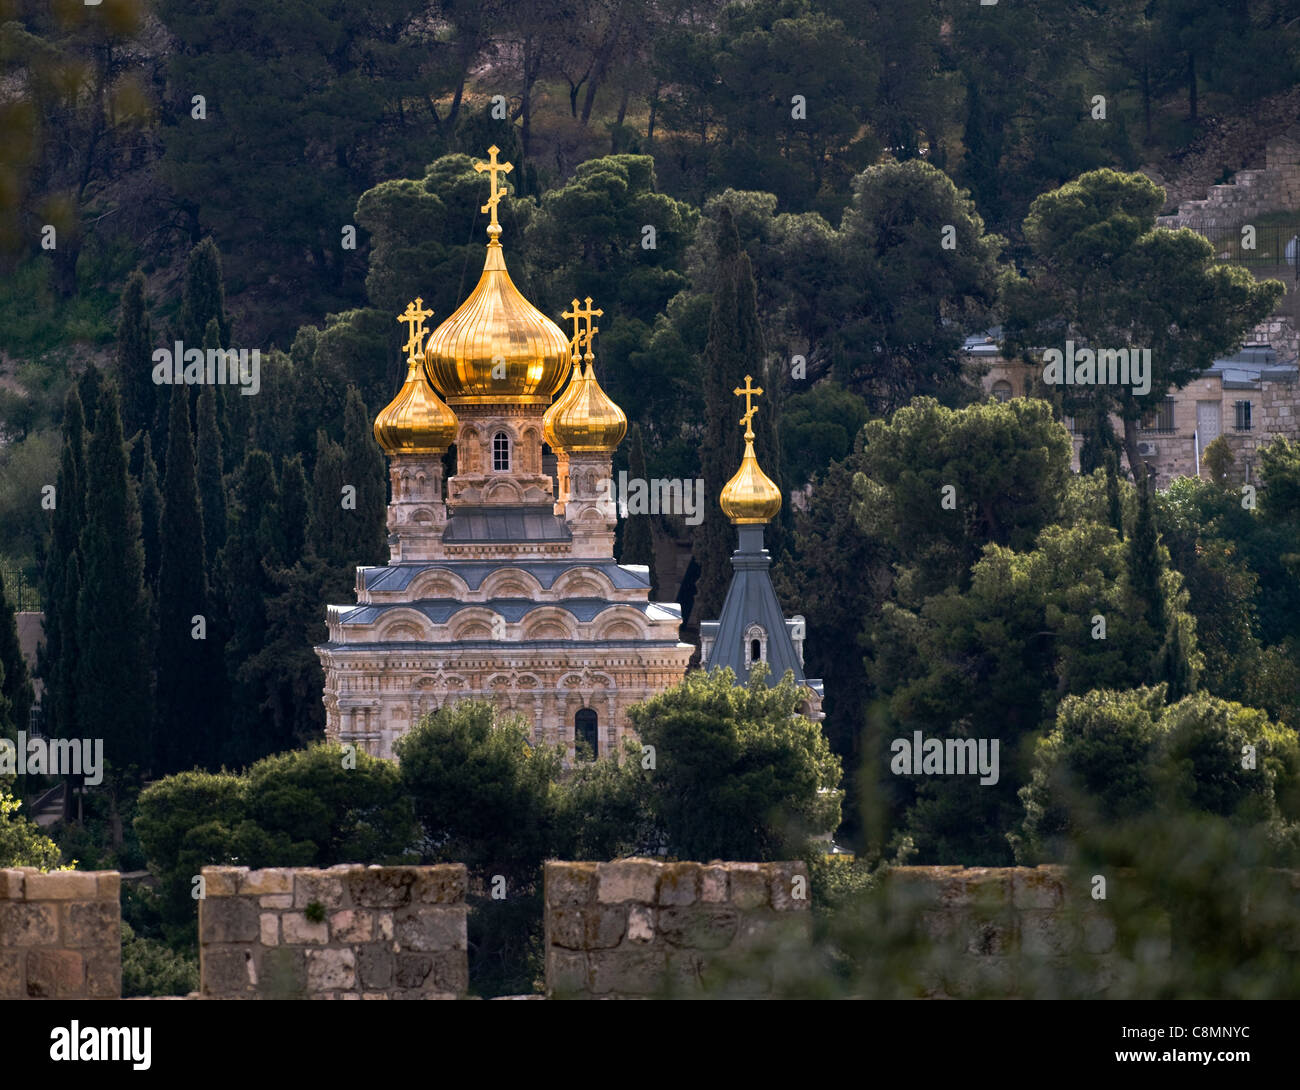 The beautiful , Onion dome shaped , Russian Orthodox church of Maria Magdalene on the slopes of the Mt. of Olives - Stock Image